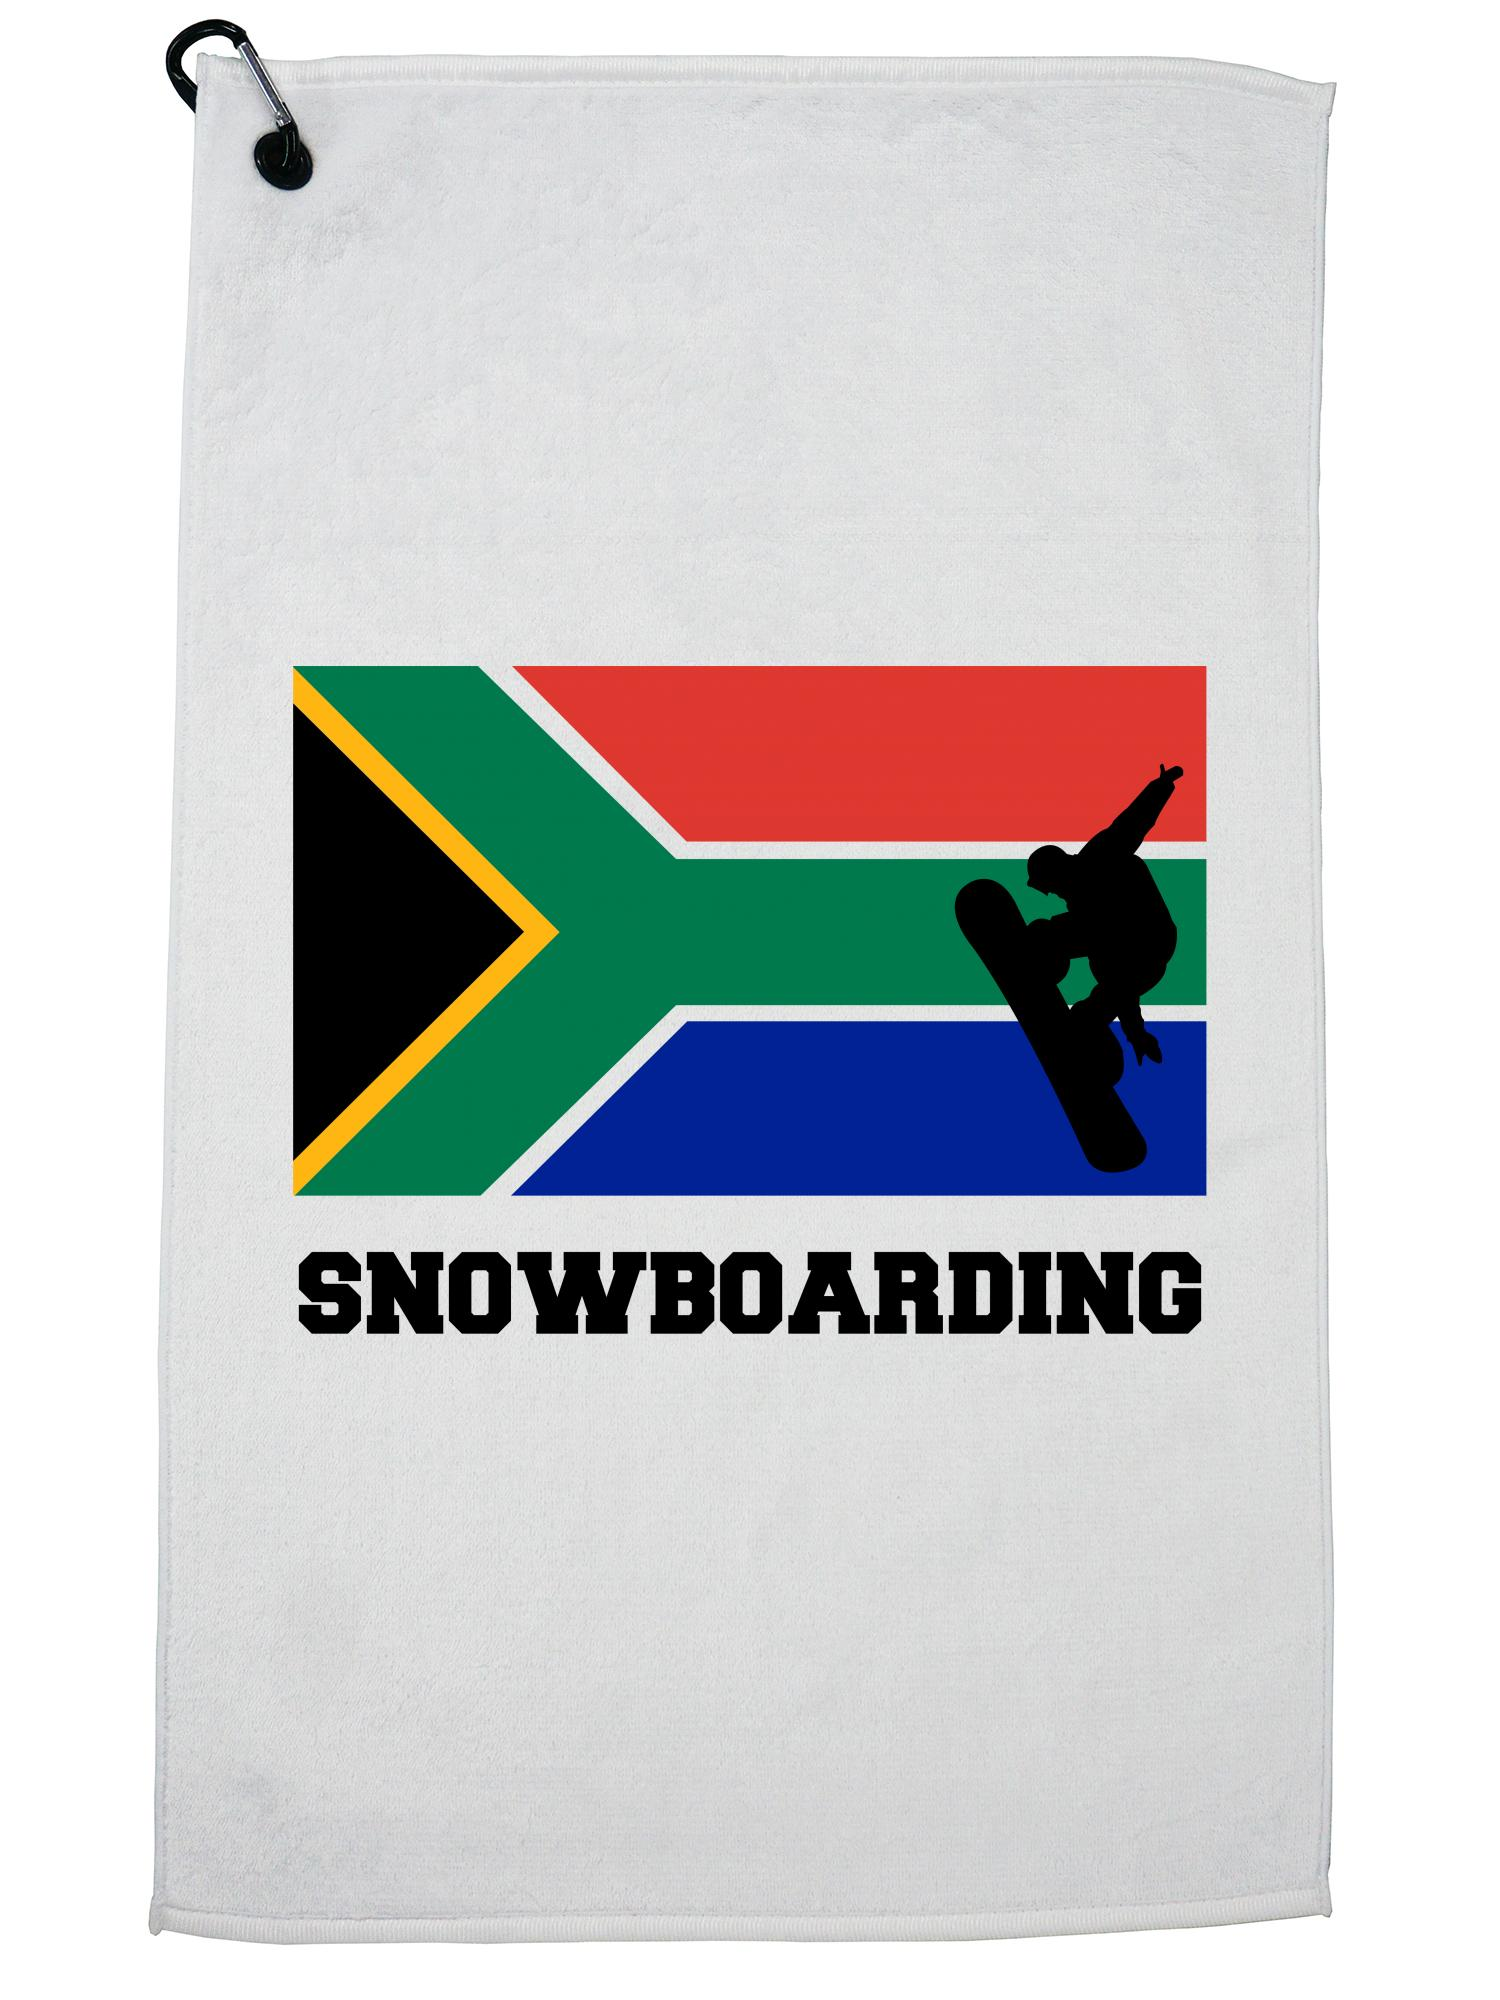 South Africa Olympic Snowboarding Flag Silhouette Golf Towel with Carabiner Clip by Hollywood Thread